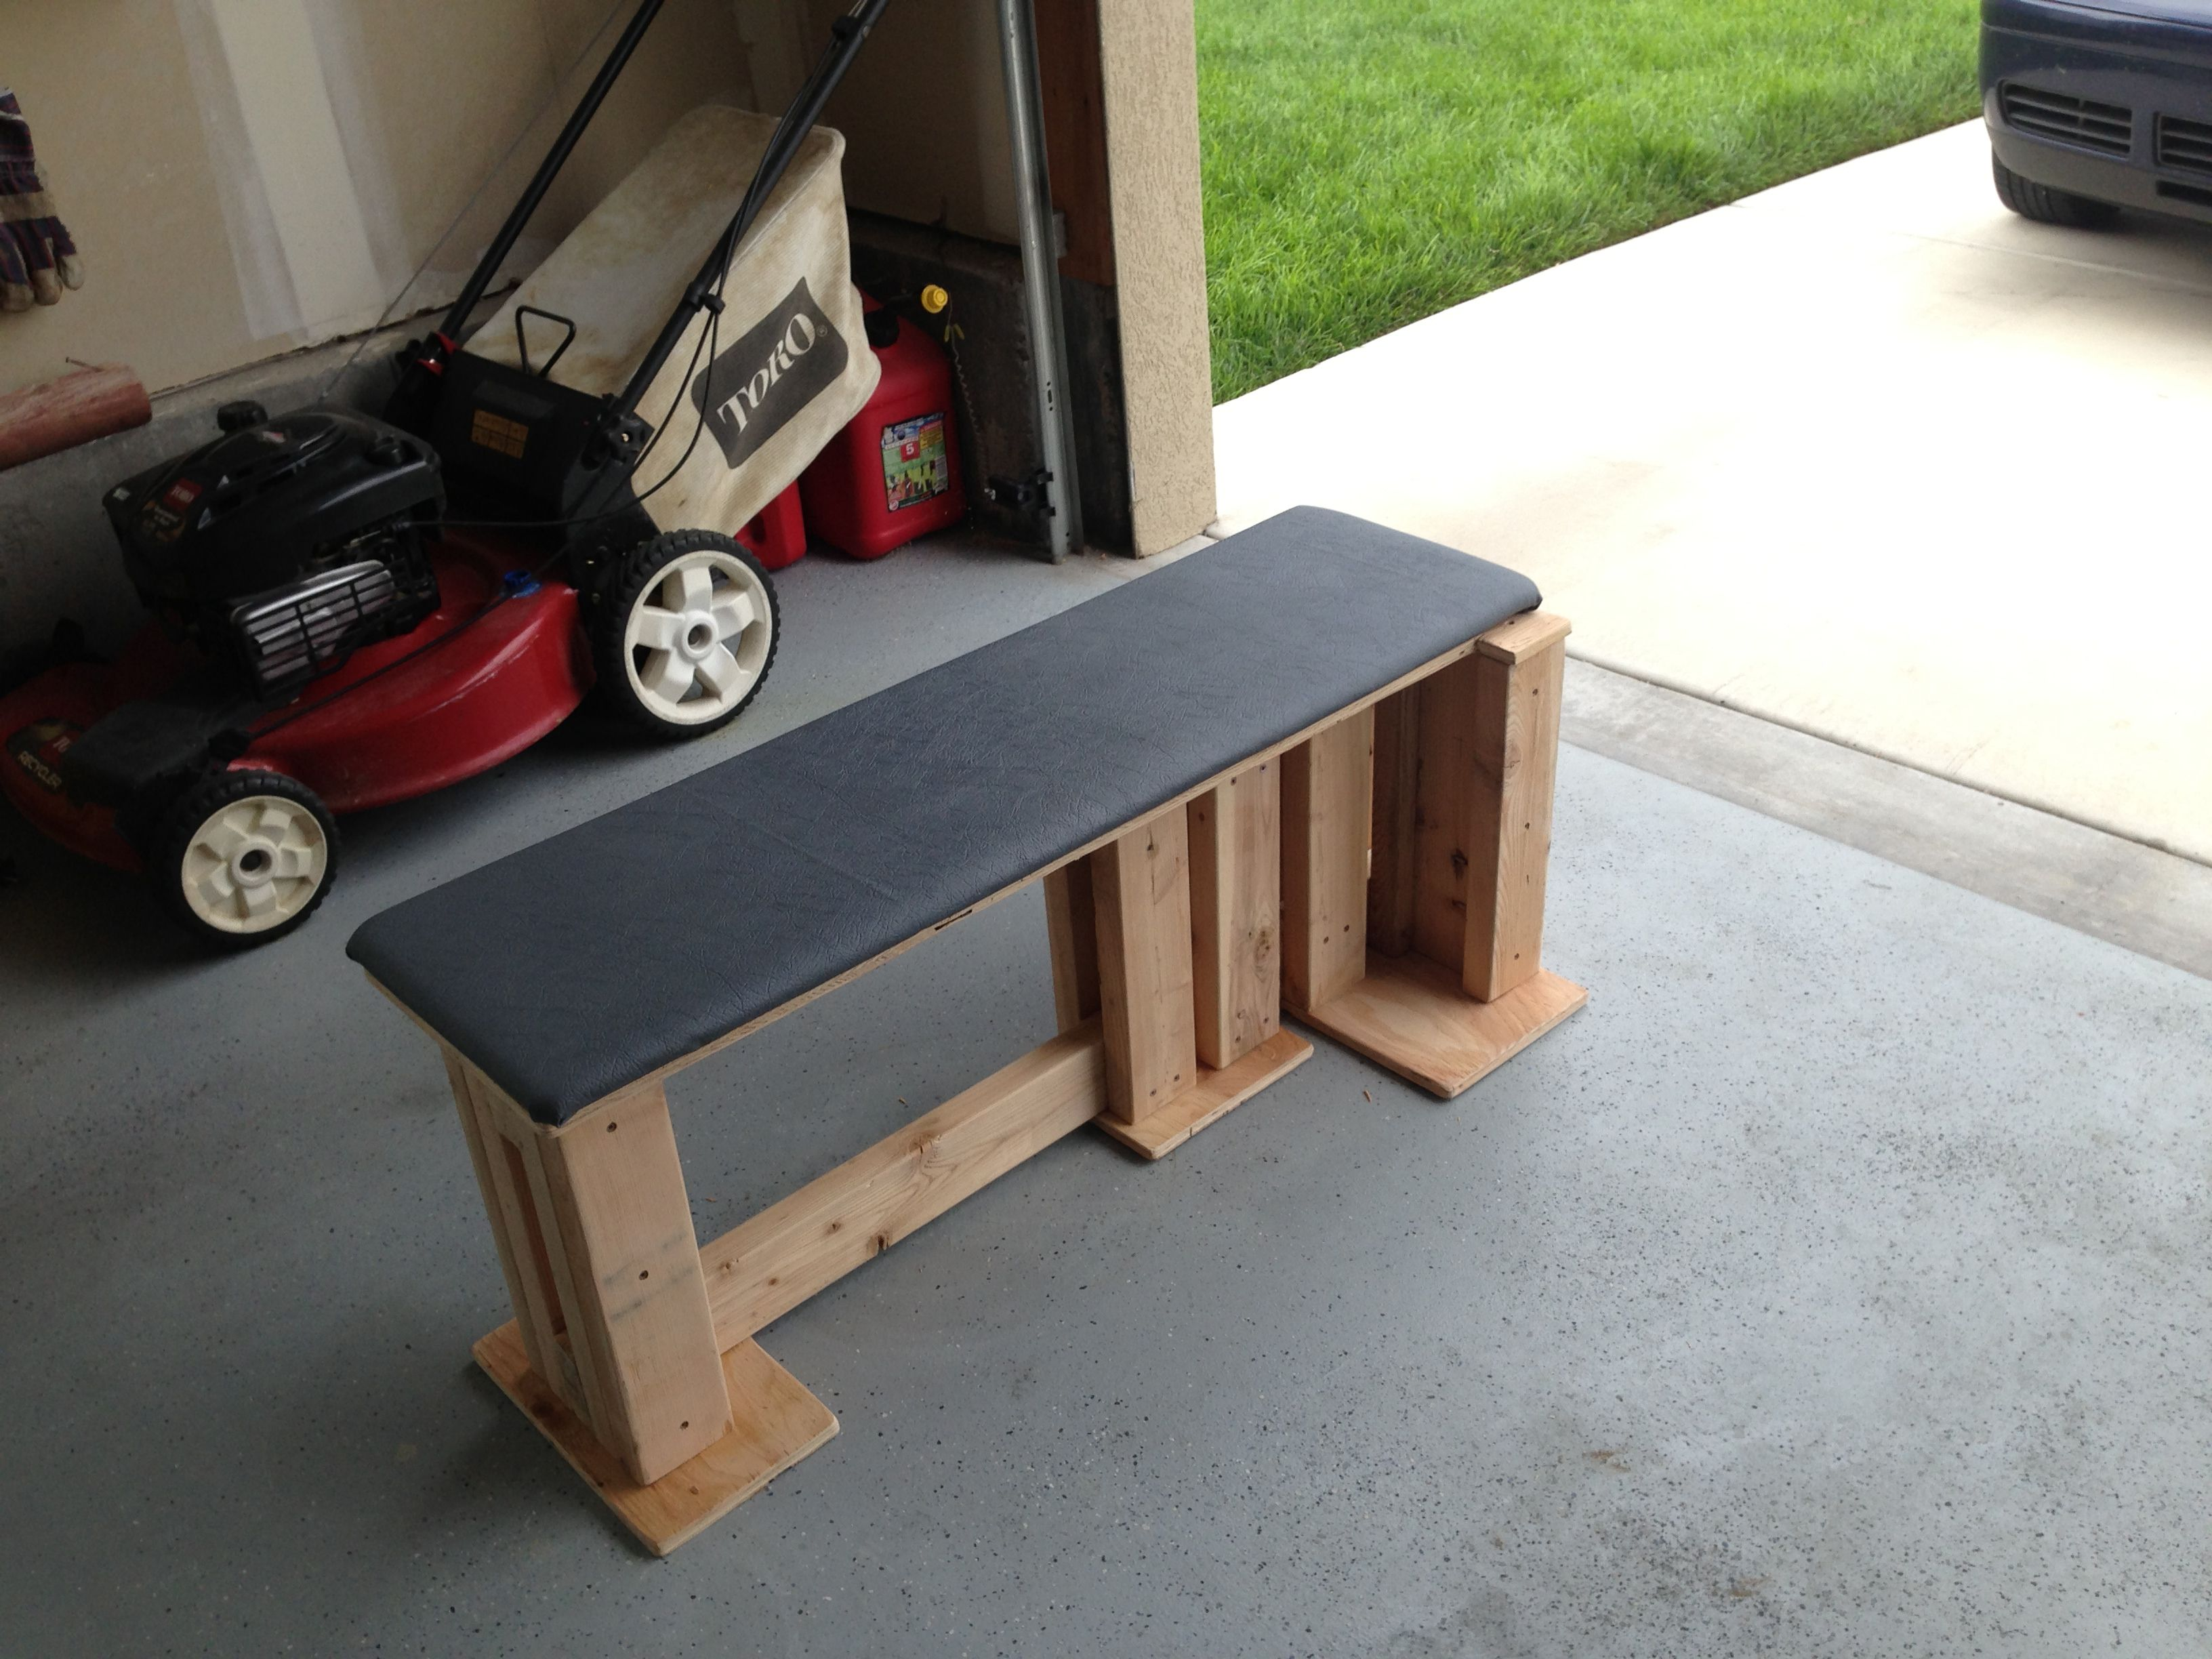 Strong Homemade Bench For Home Gym Dyi Homegym Pinterest Homemade Bench Gym And Bench